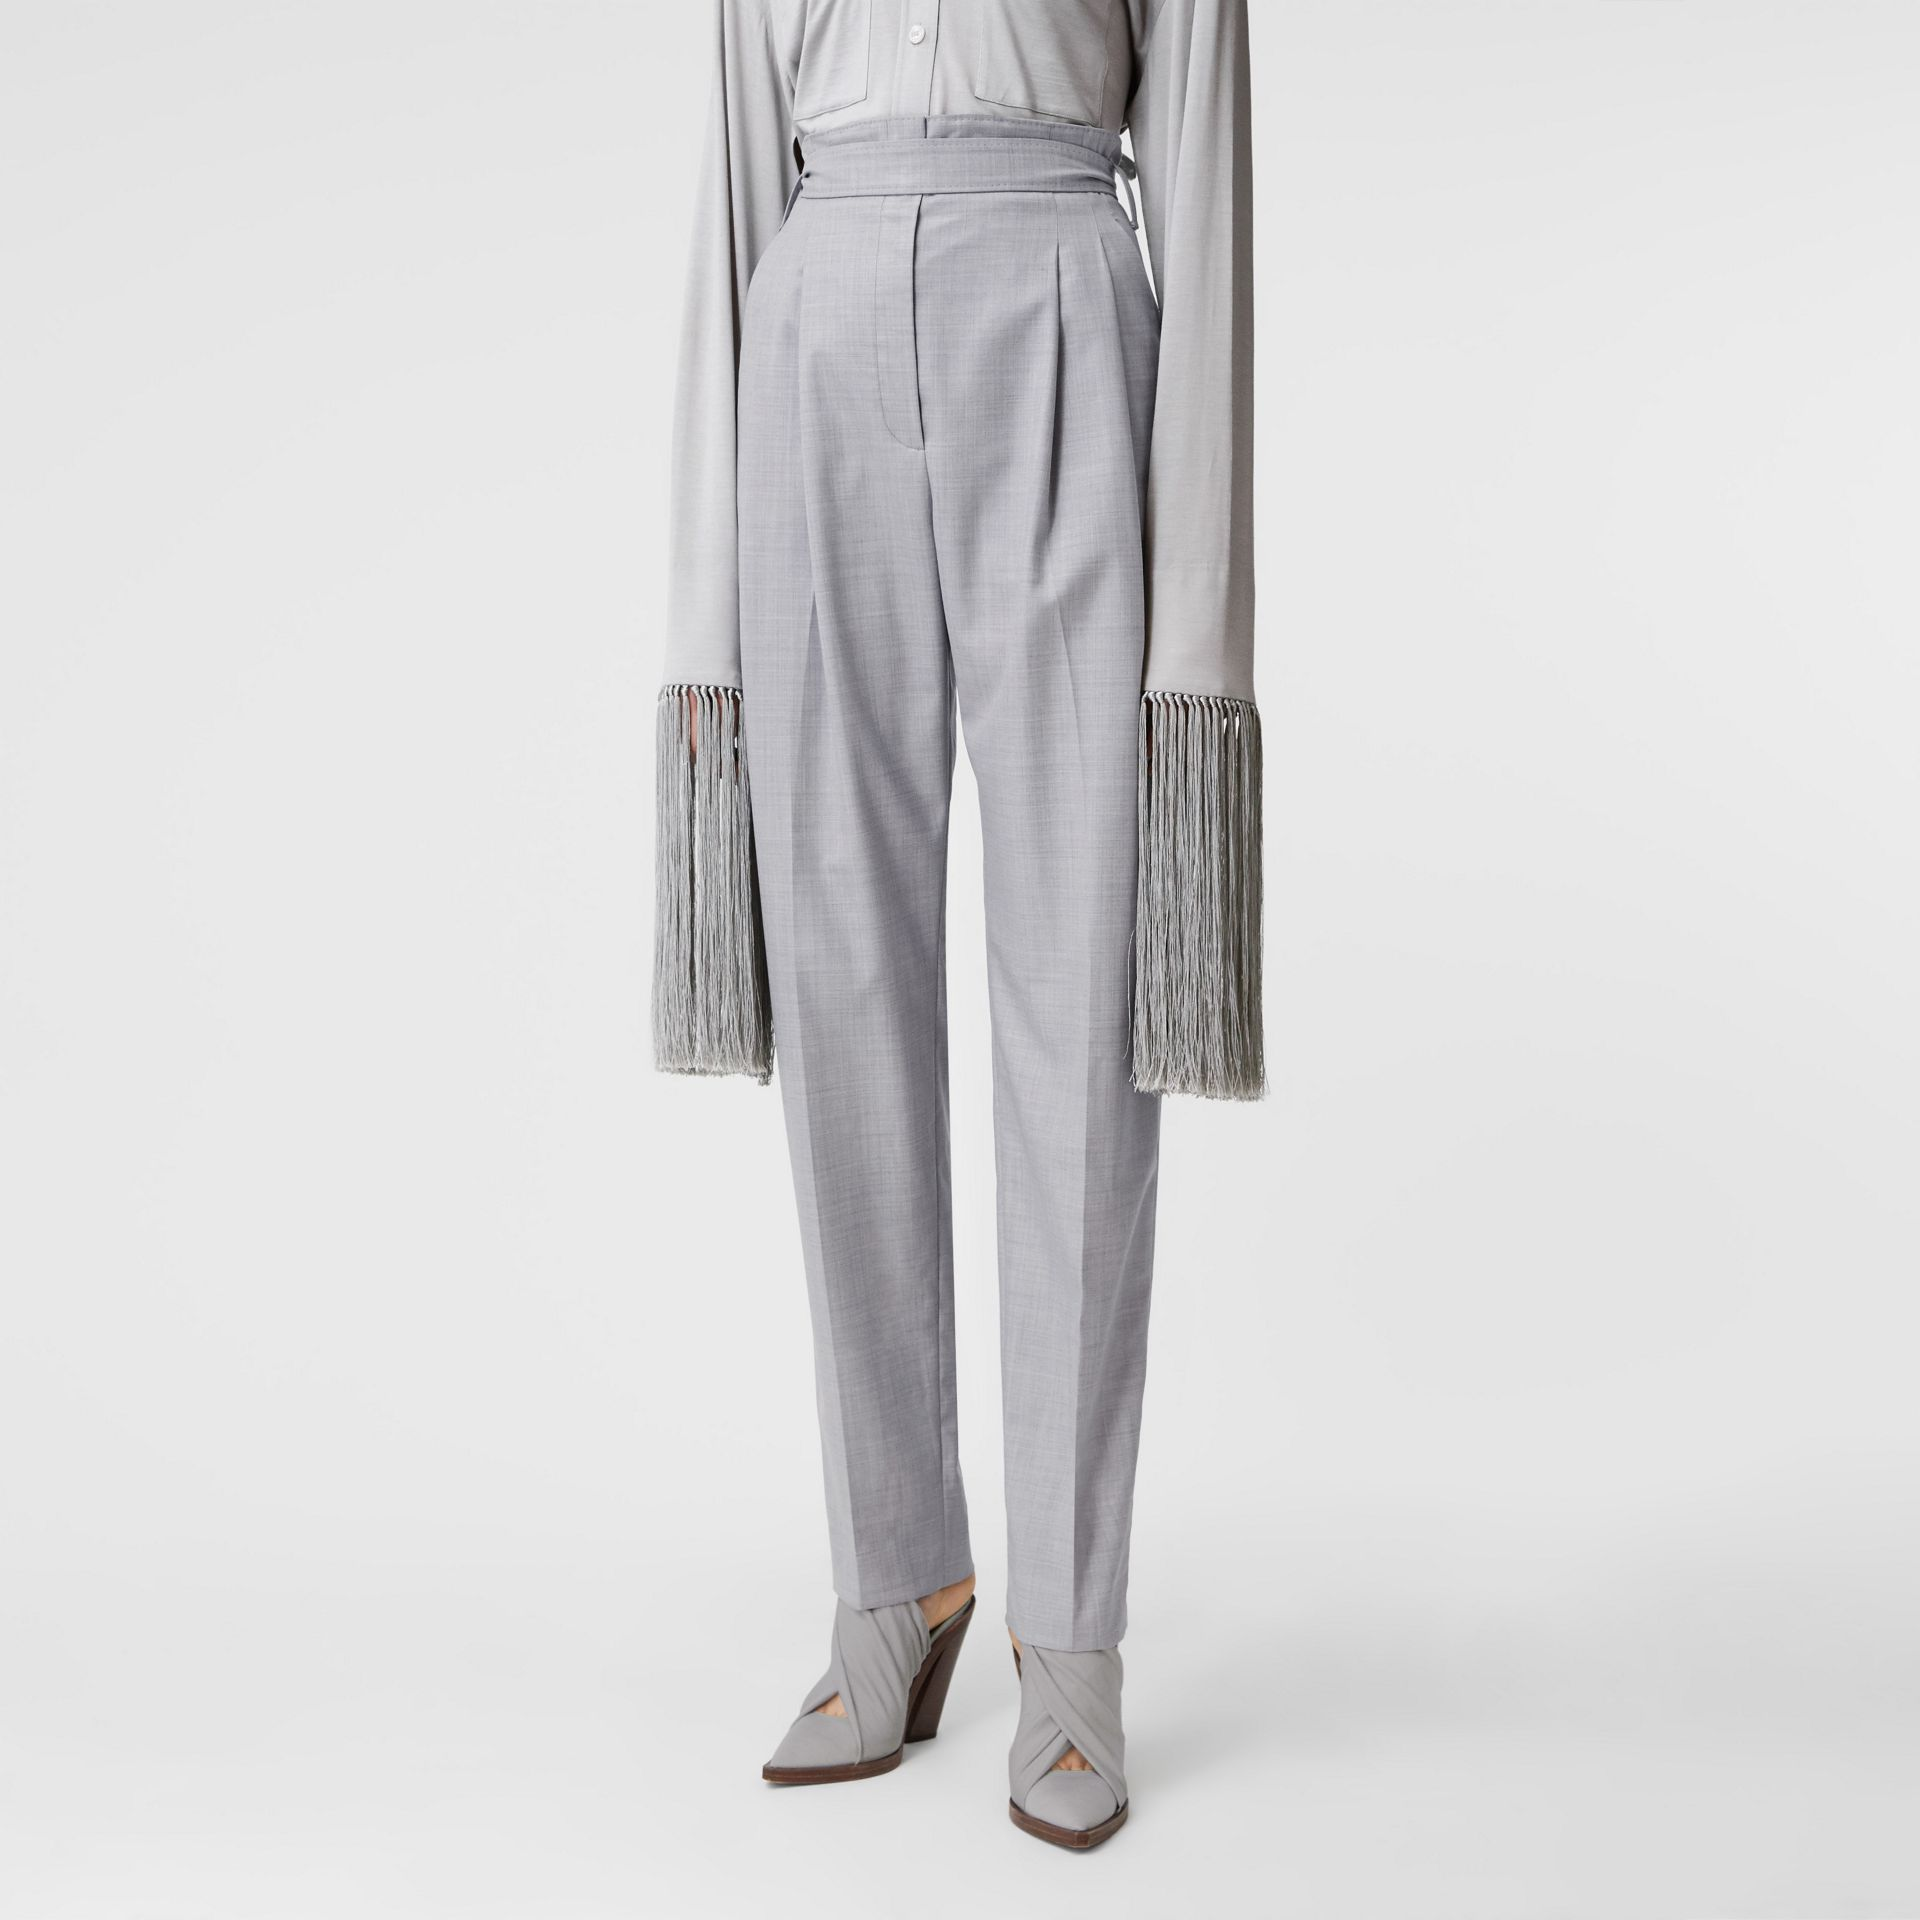 Cut-out Detail Wool Tailored Trousers in Heather Melange - Women | Burberry United States - gallery image 4